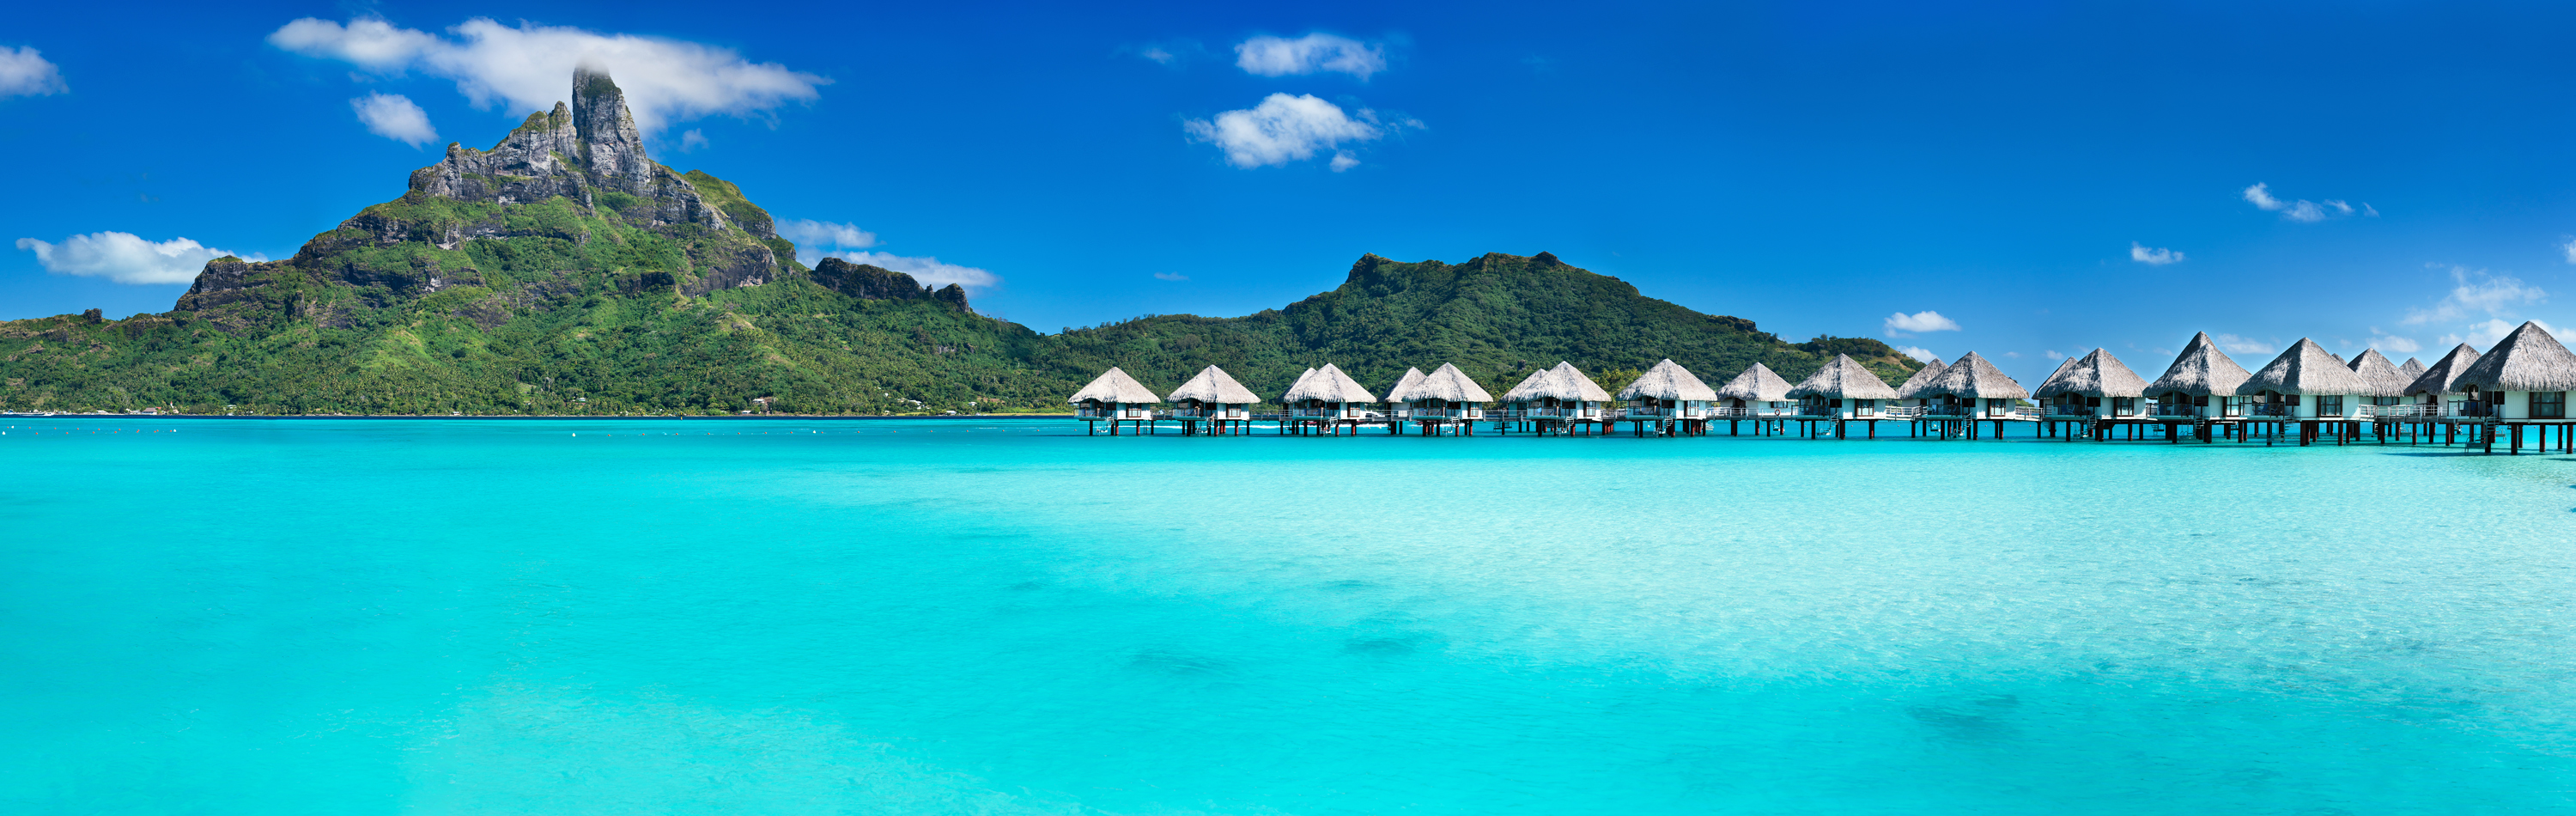 Bora Bora Vacations Tours Travel Packages 2020 2021